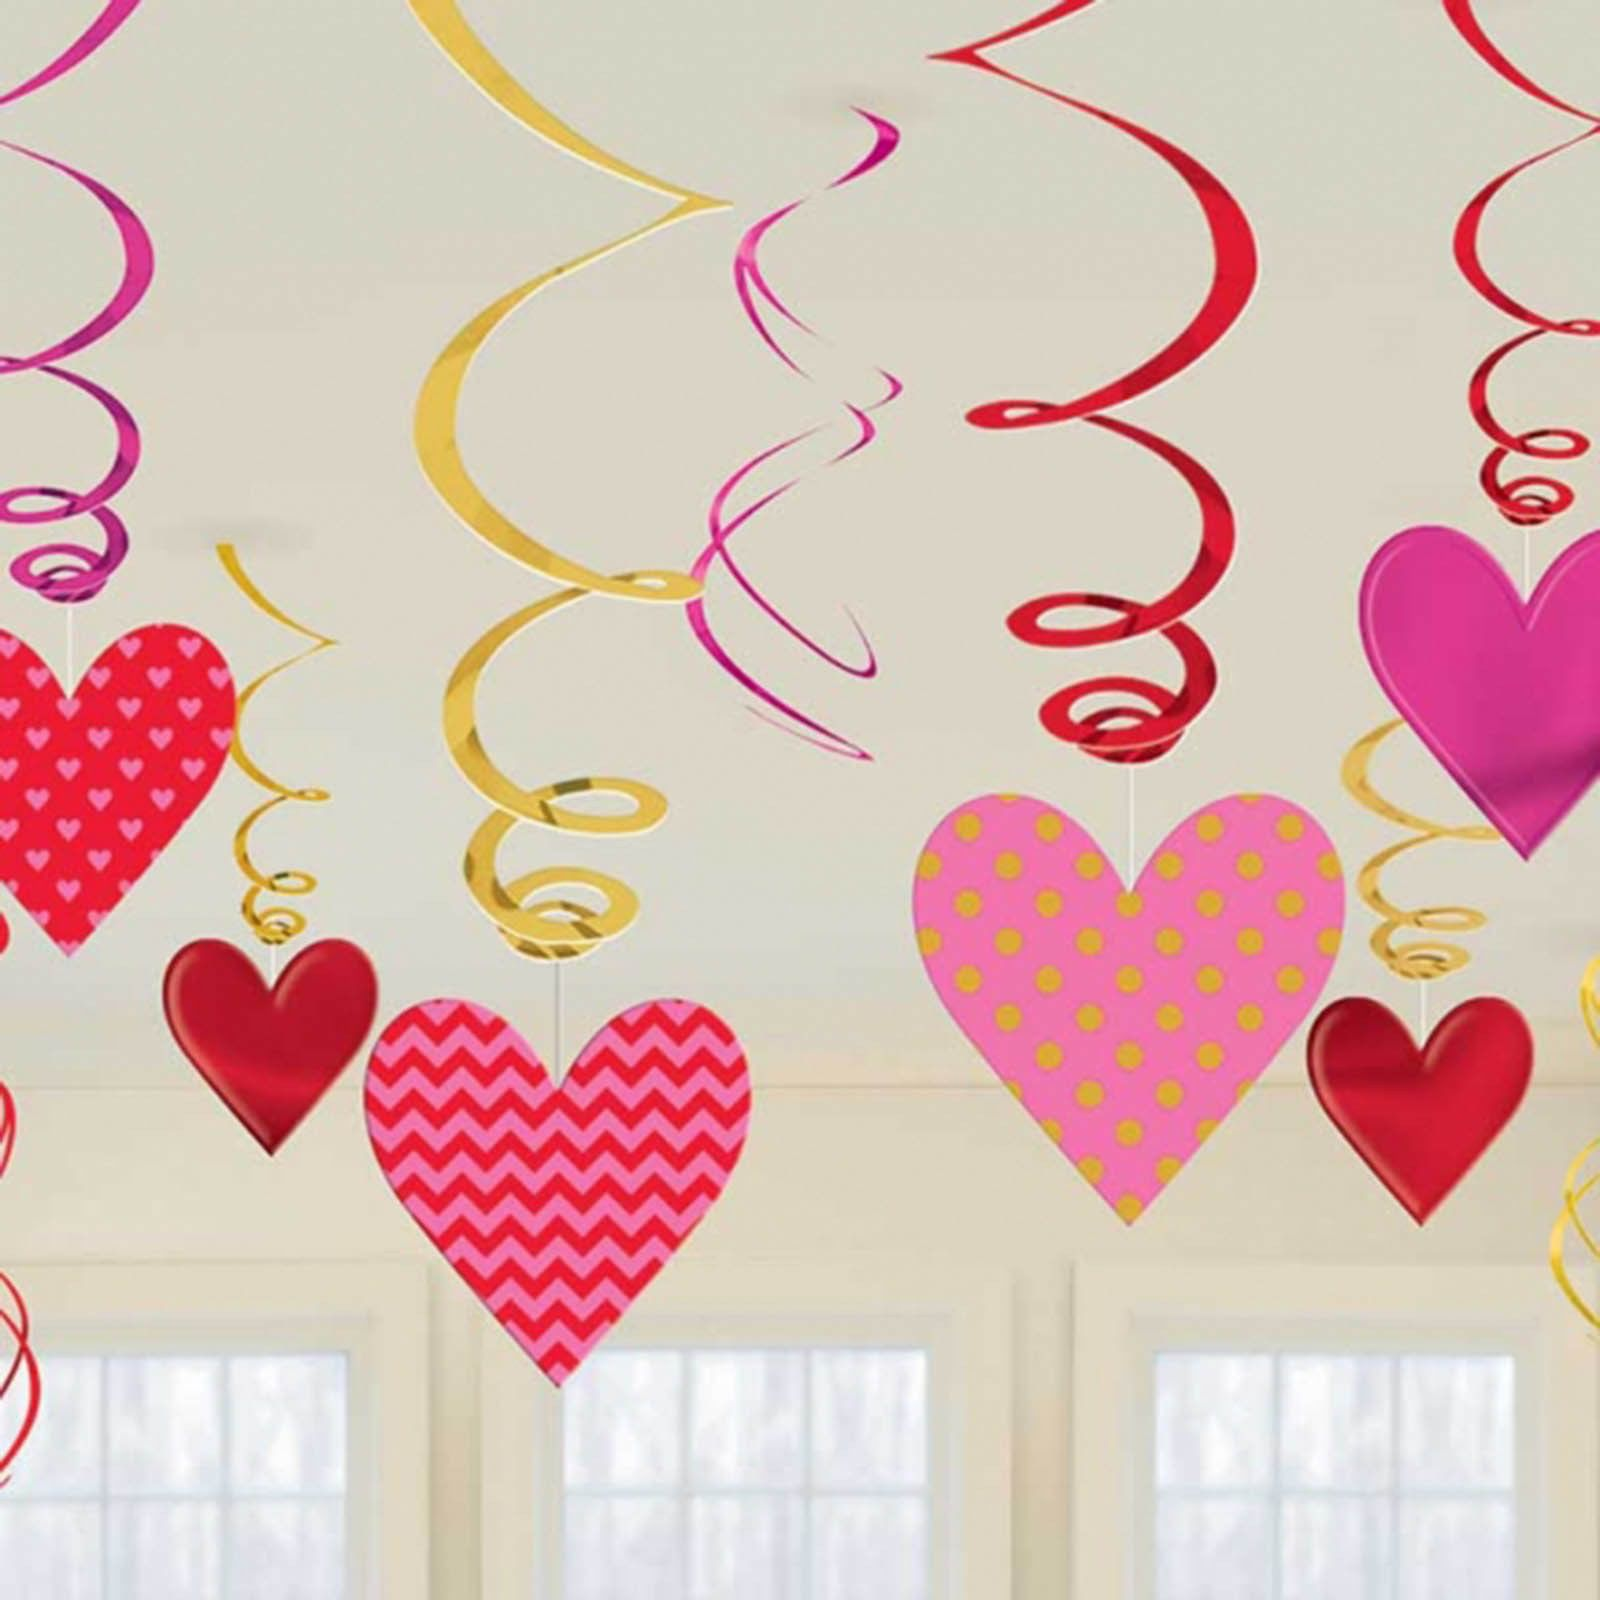 12 Assorted Hearts Valentine s Day Party Hanging Cutout Swirls